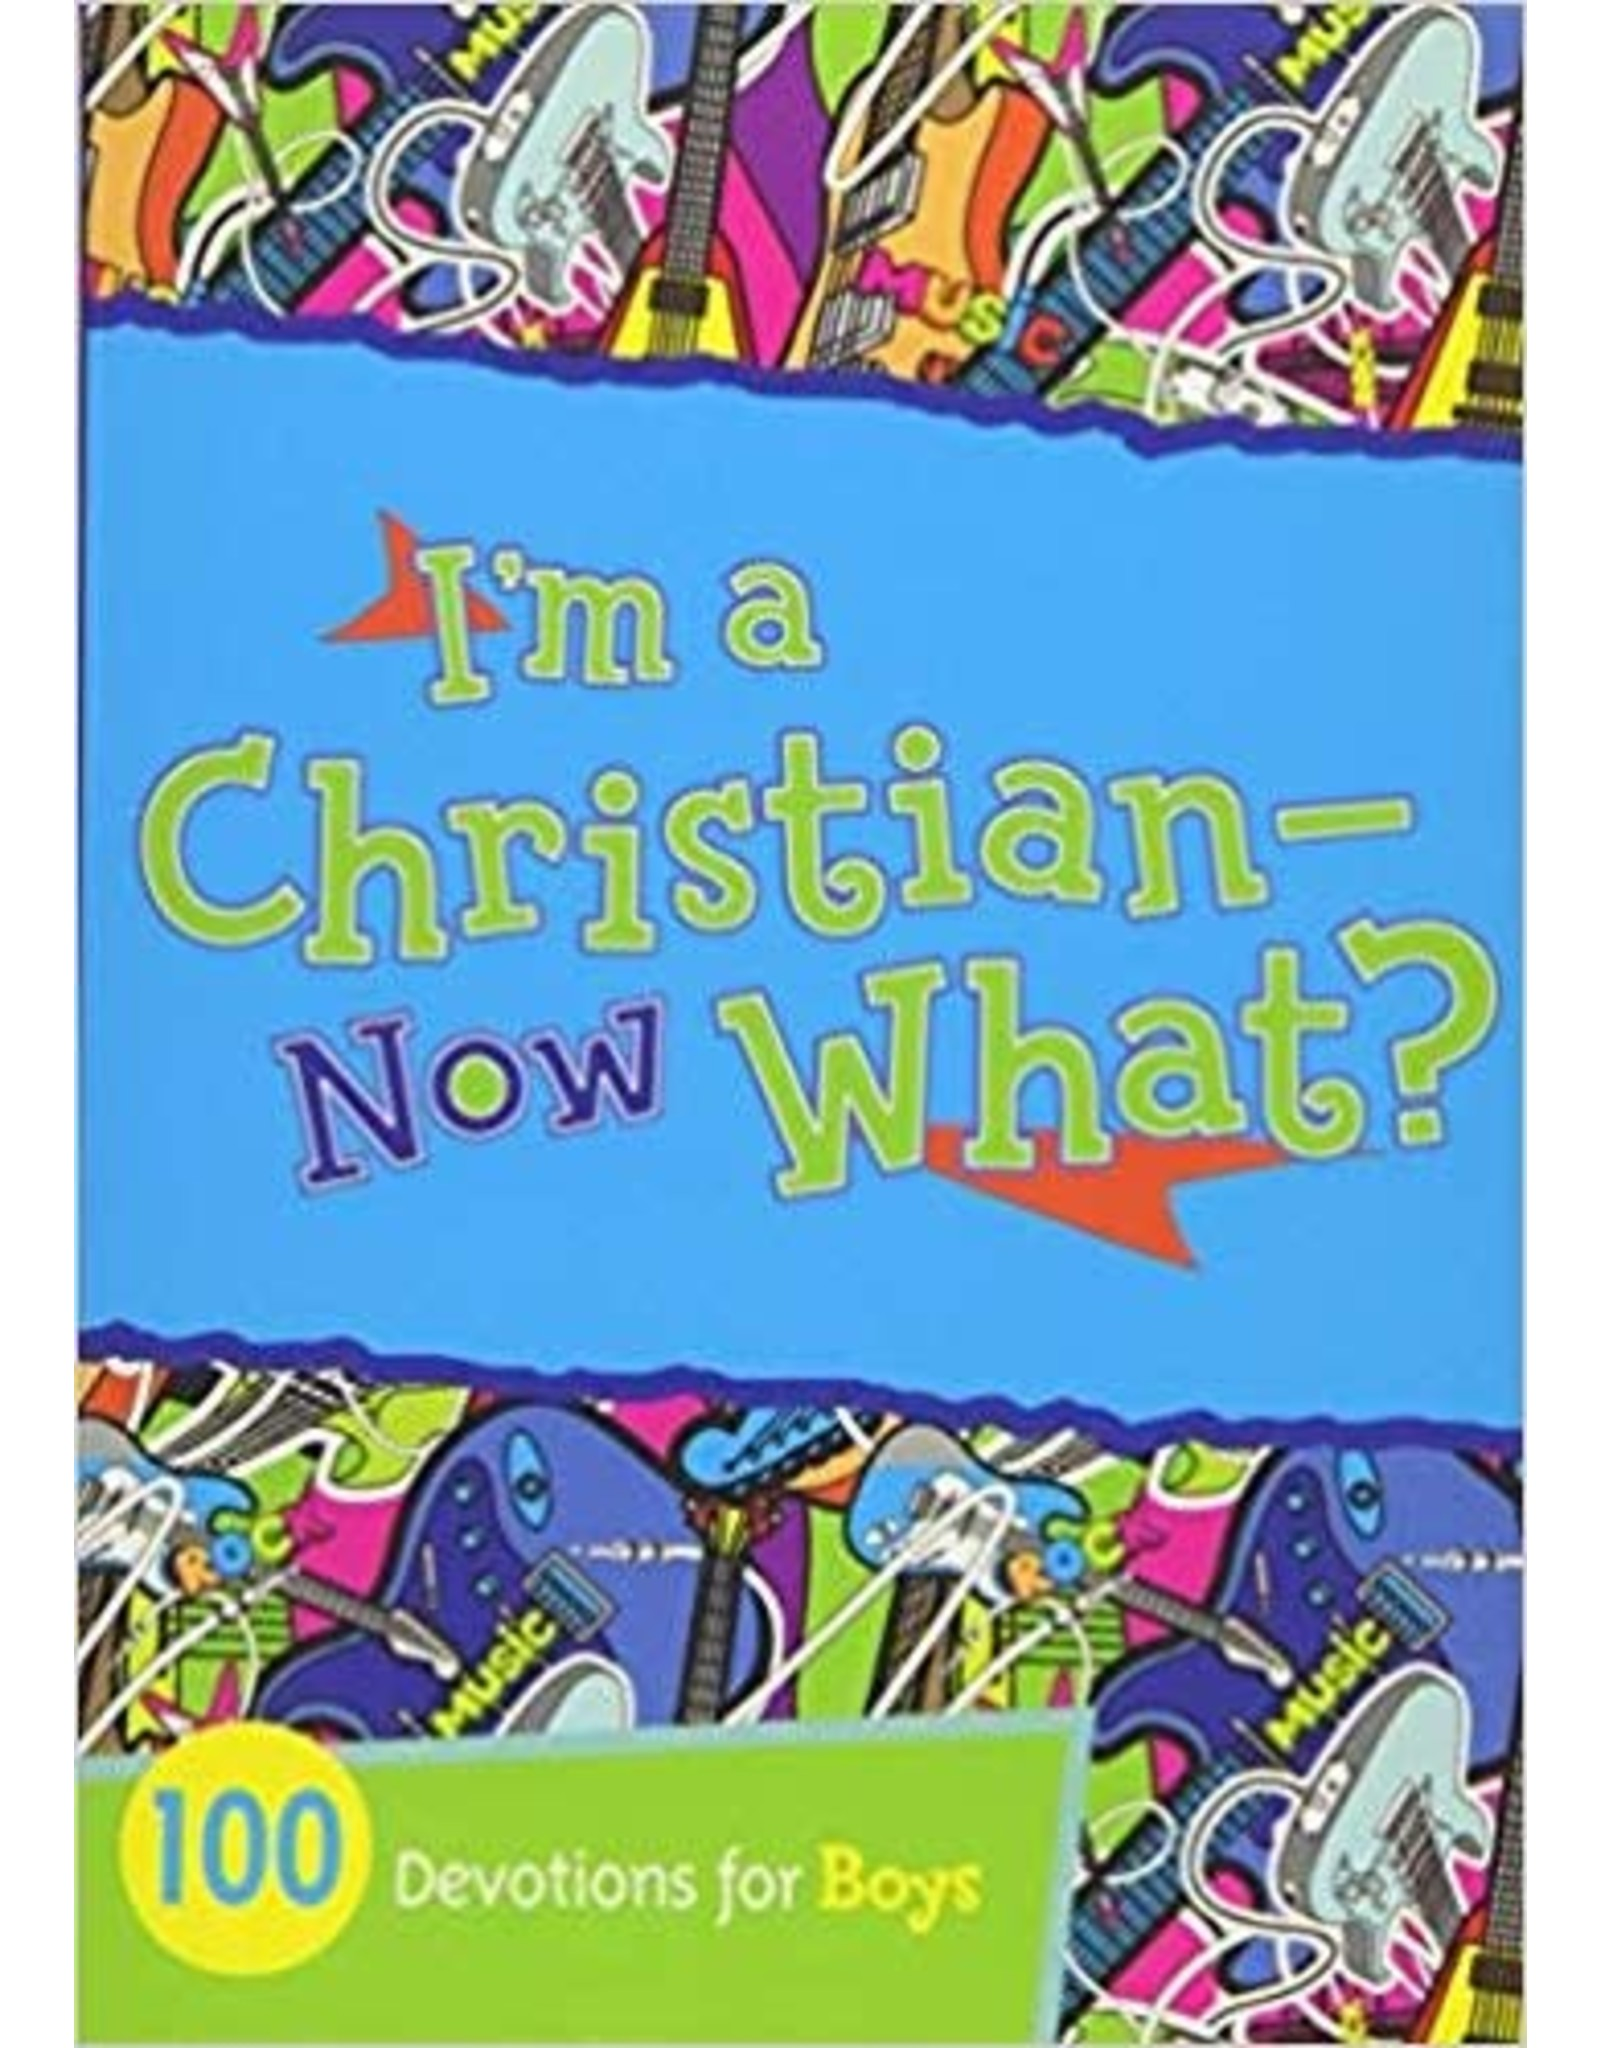 I'm a Christian-Now What? (Boys)